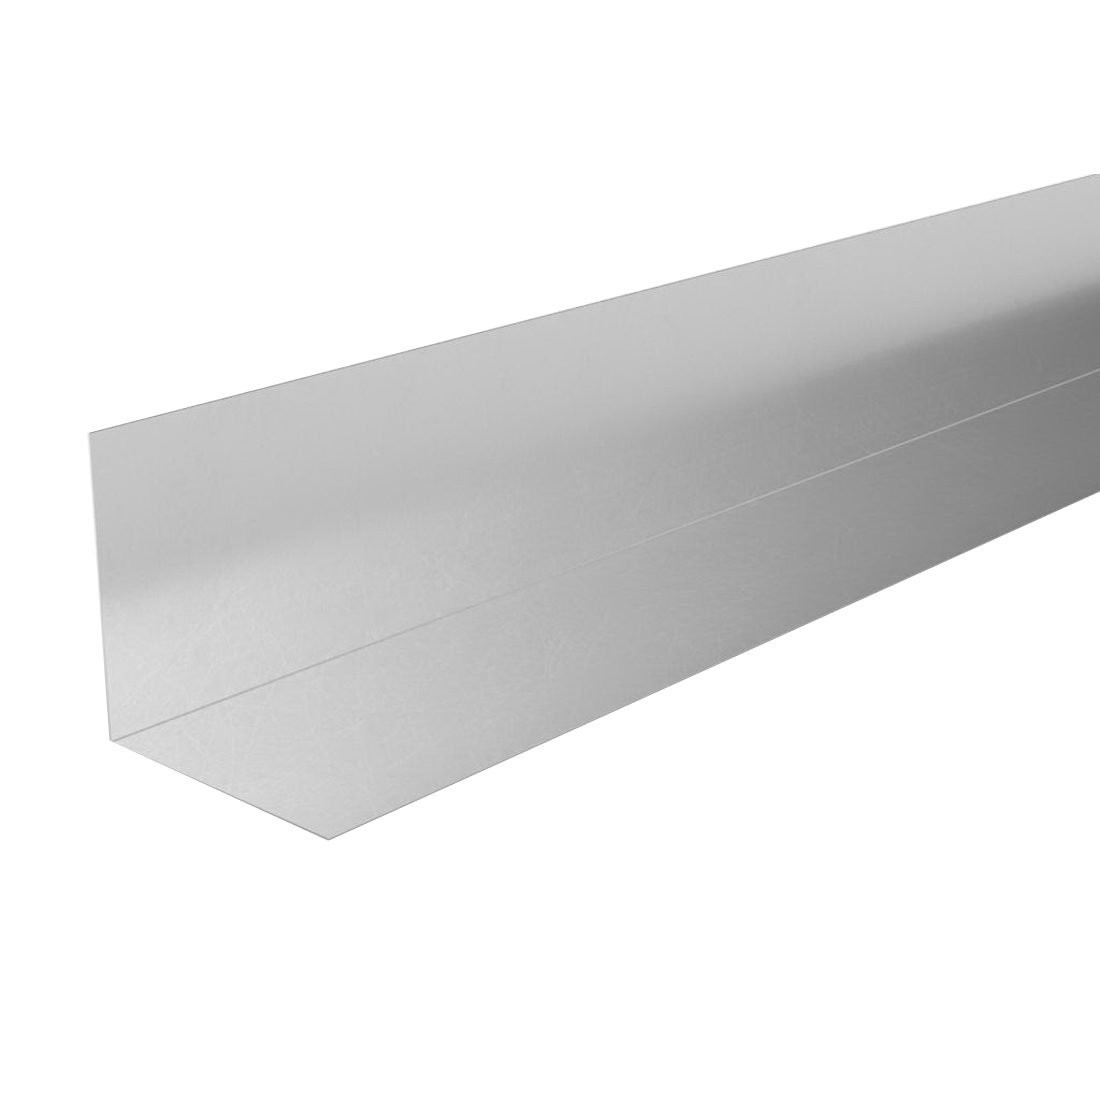 Universal Corner Flashing 3m x 100mm x 100mm